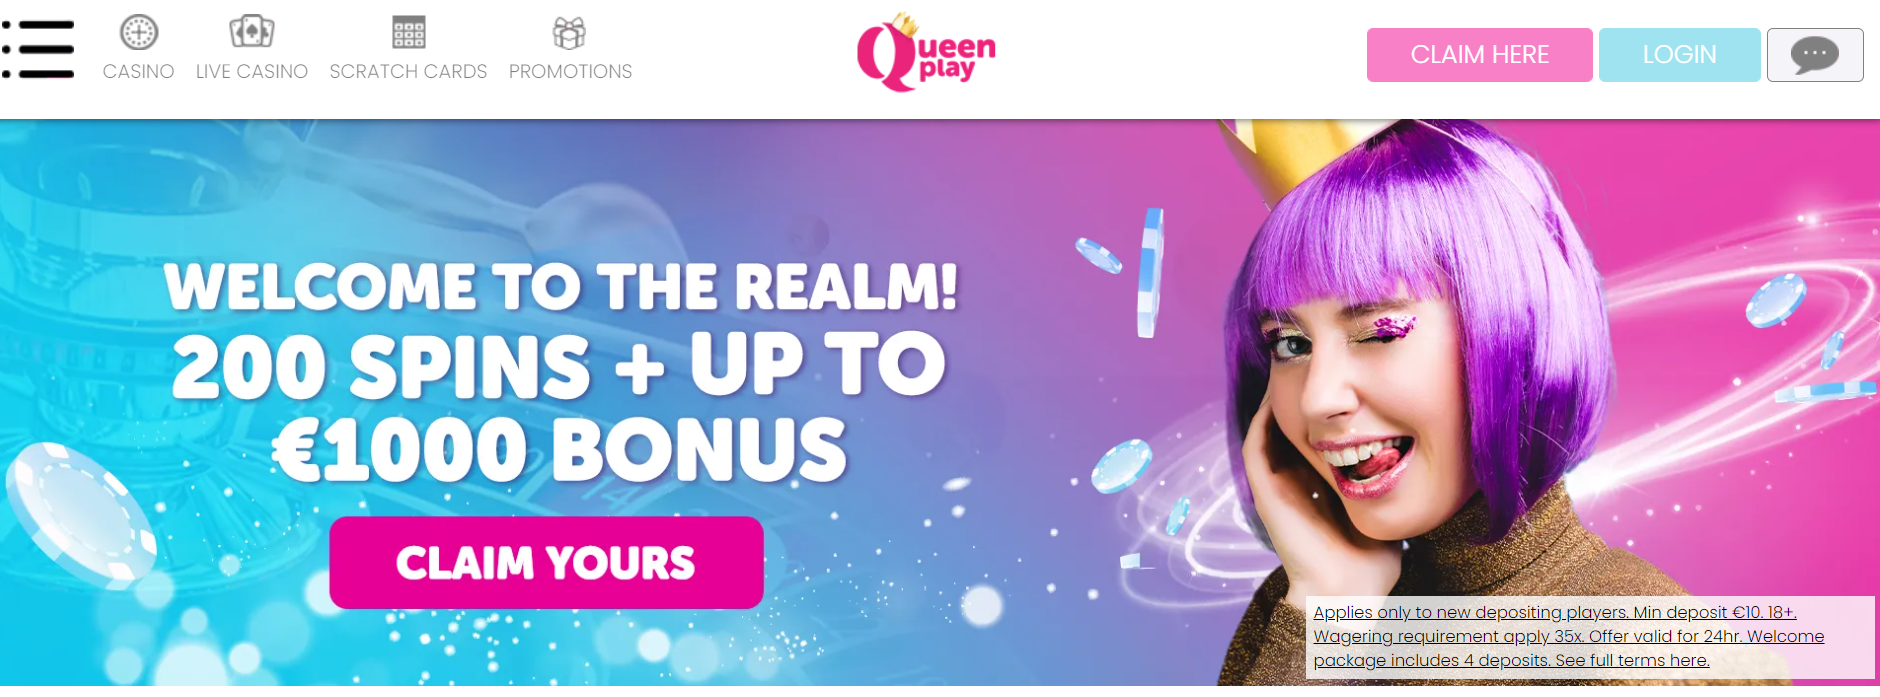 Queen Play Test April 2021